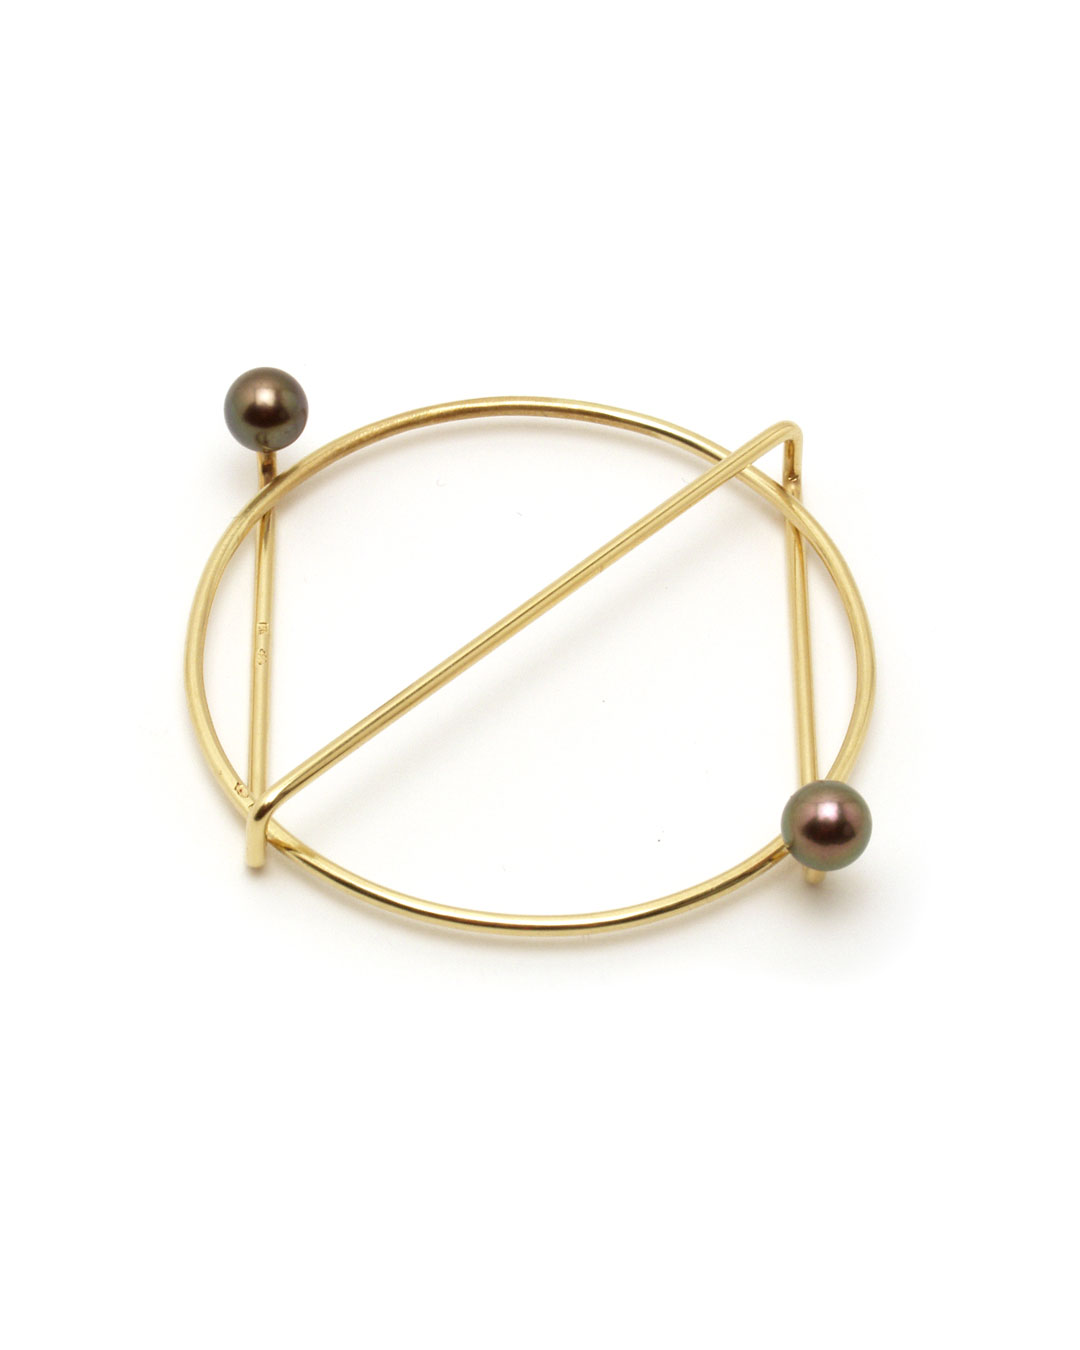 Herman Hermsen, untitled, 1989, brooch; 14ct yellow gold, pearls, 60 x 50 x 10 mm, €1020